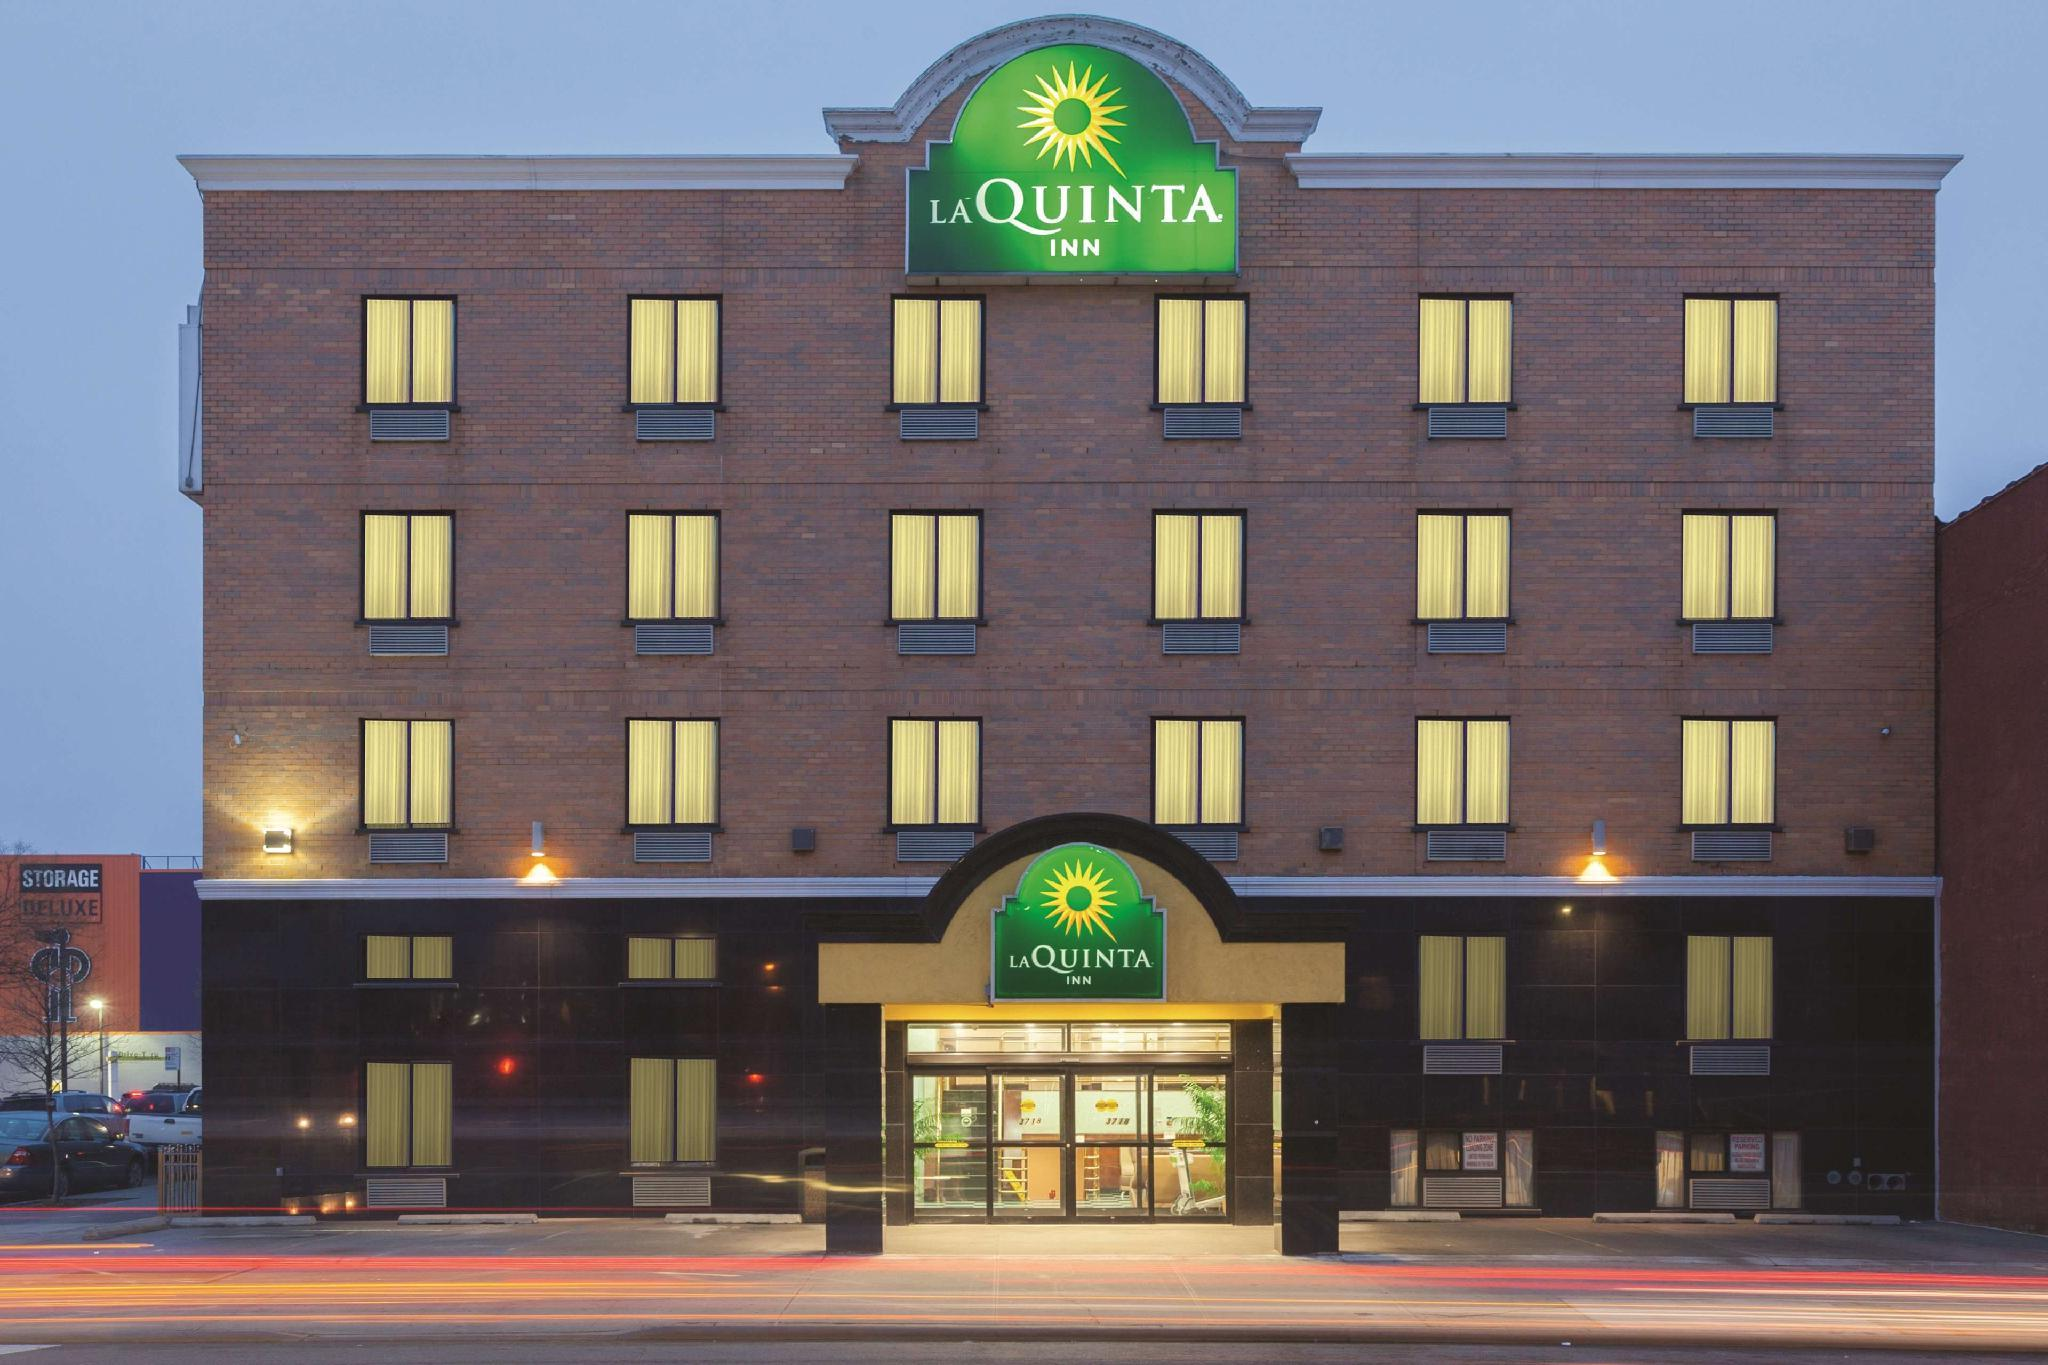 La Quinta Inn by Wyndham Queens (New York City)